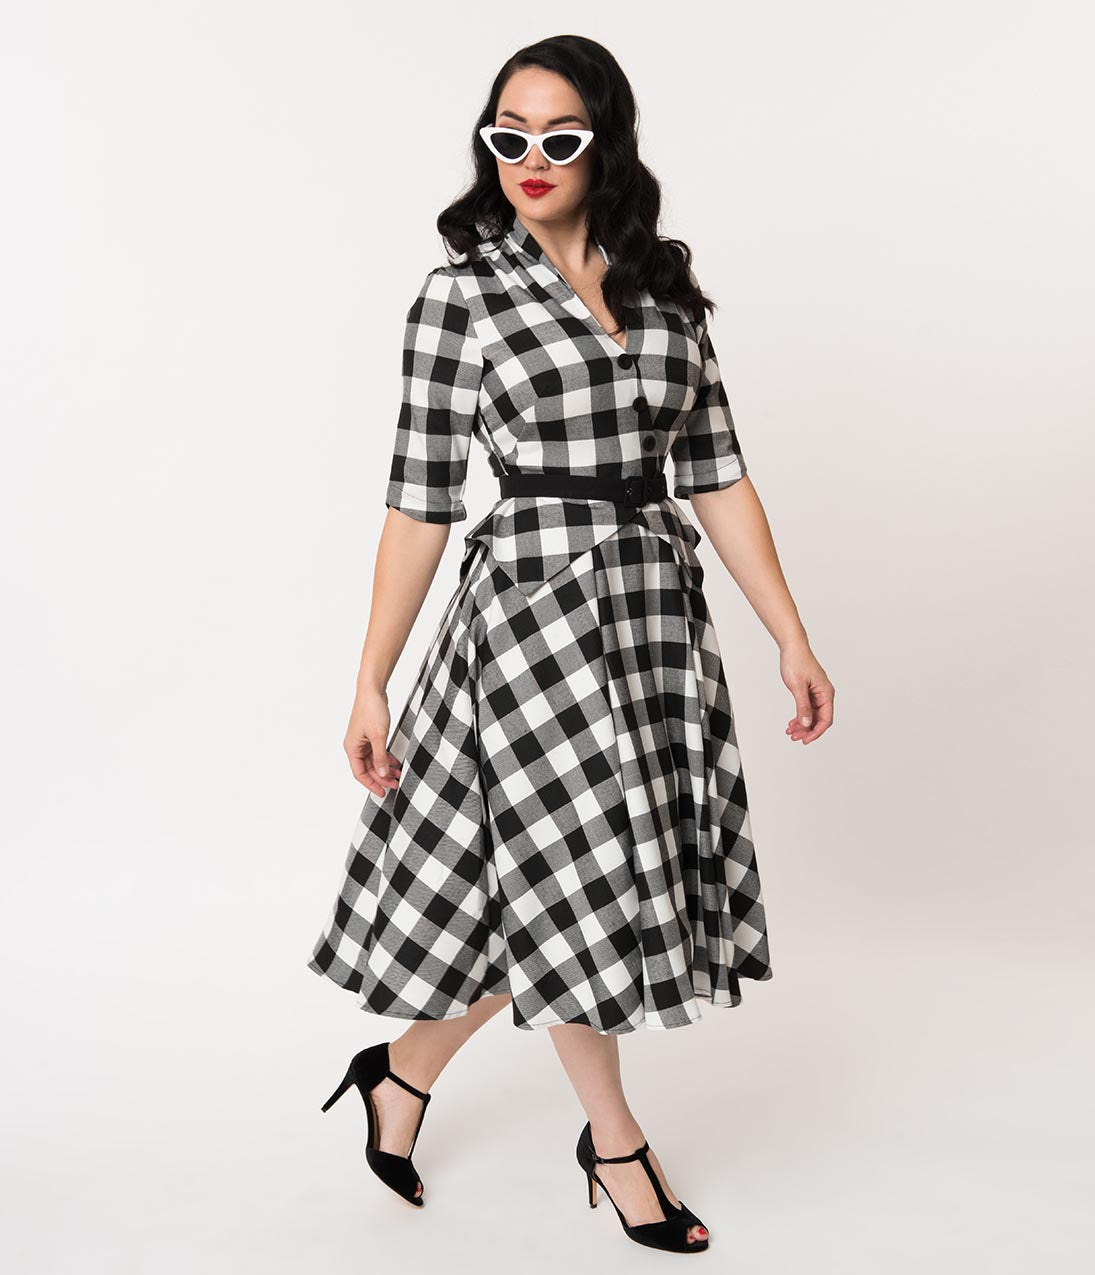 1950s Swing Dresses | 50s Swing Dress Miss Candyfloss 1950S Black  White Buffalo Plaid Chanelle Swing Dress $138.00 AT vintagedancer.com